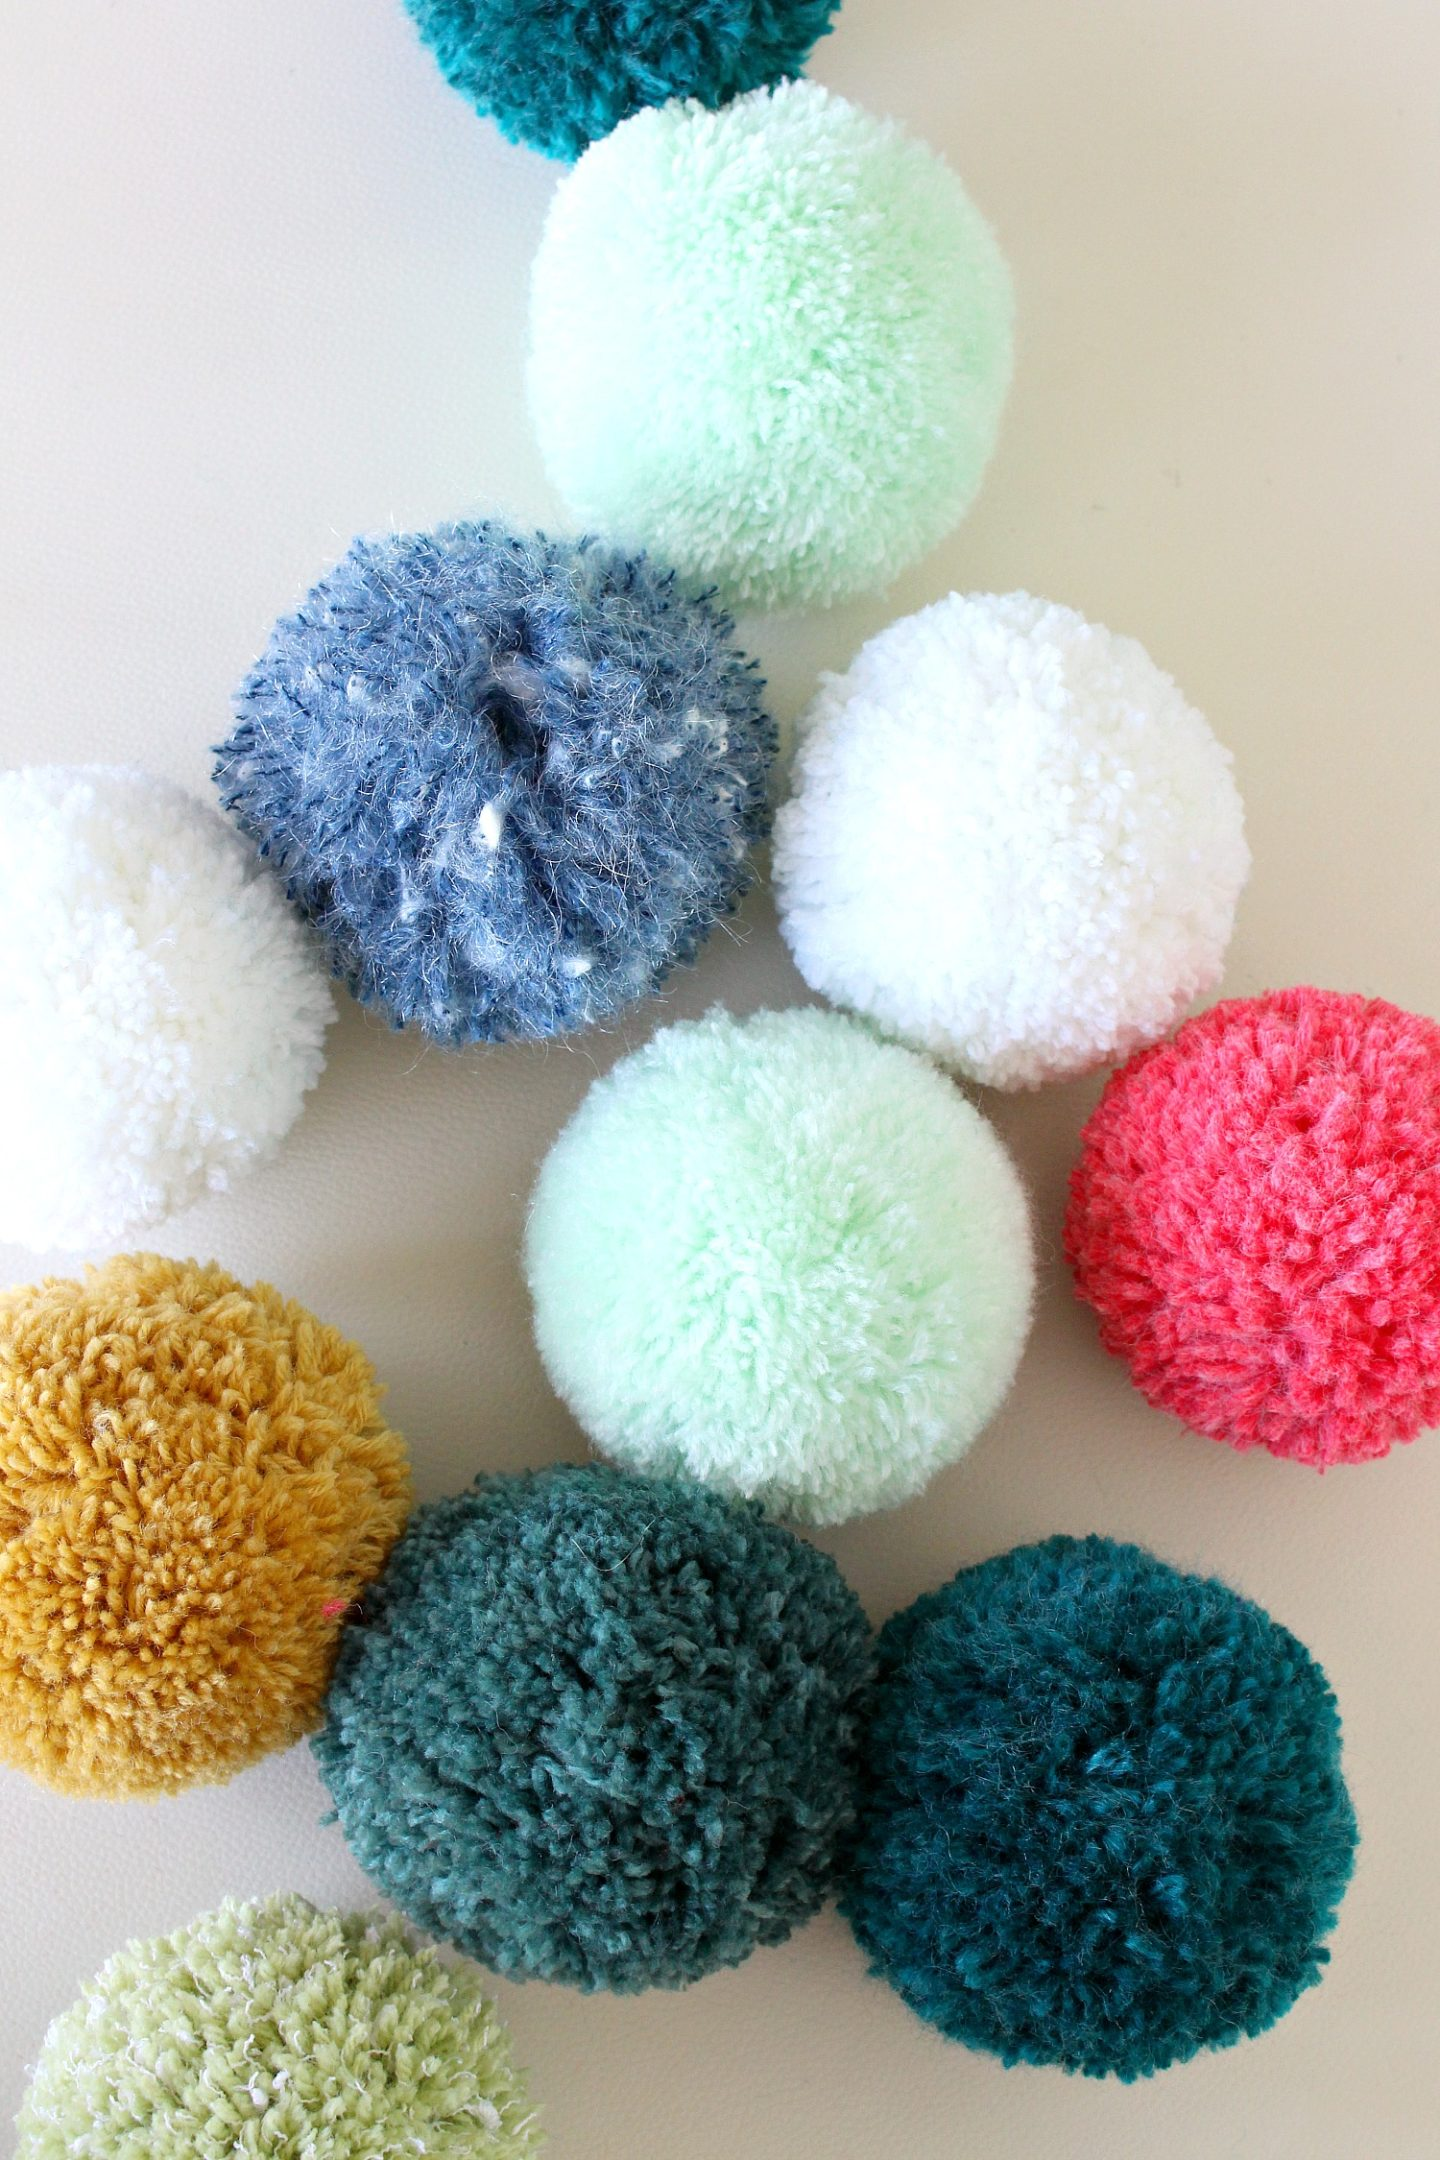 Learn How to Make a Pom Pom